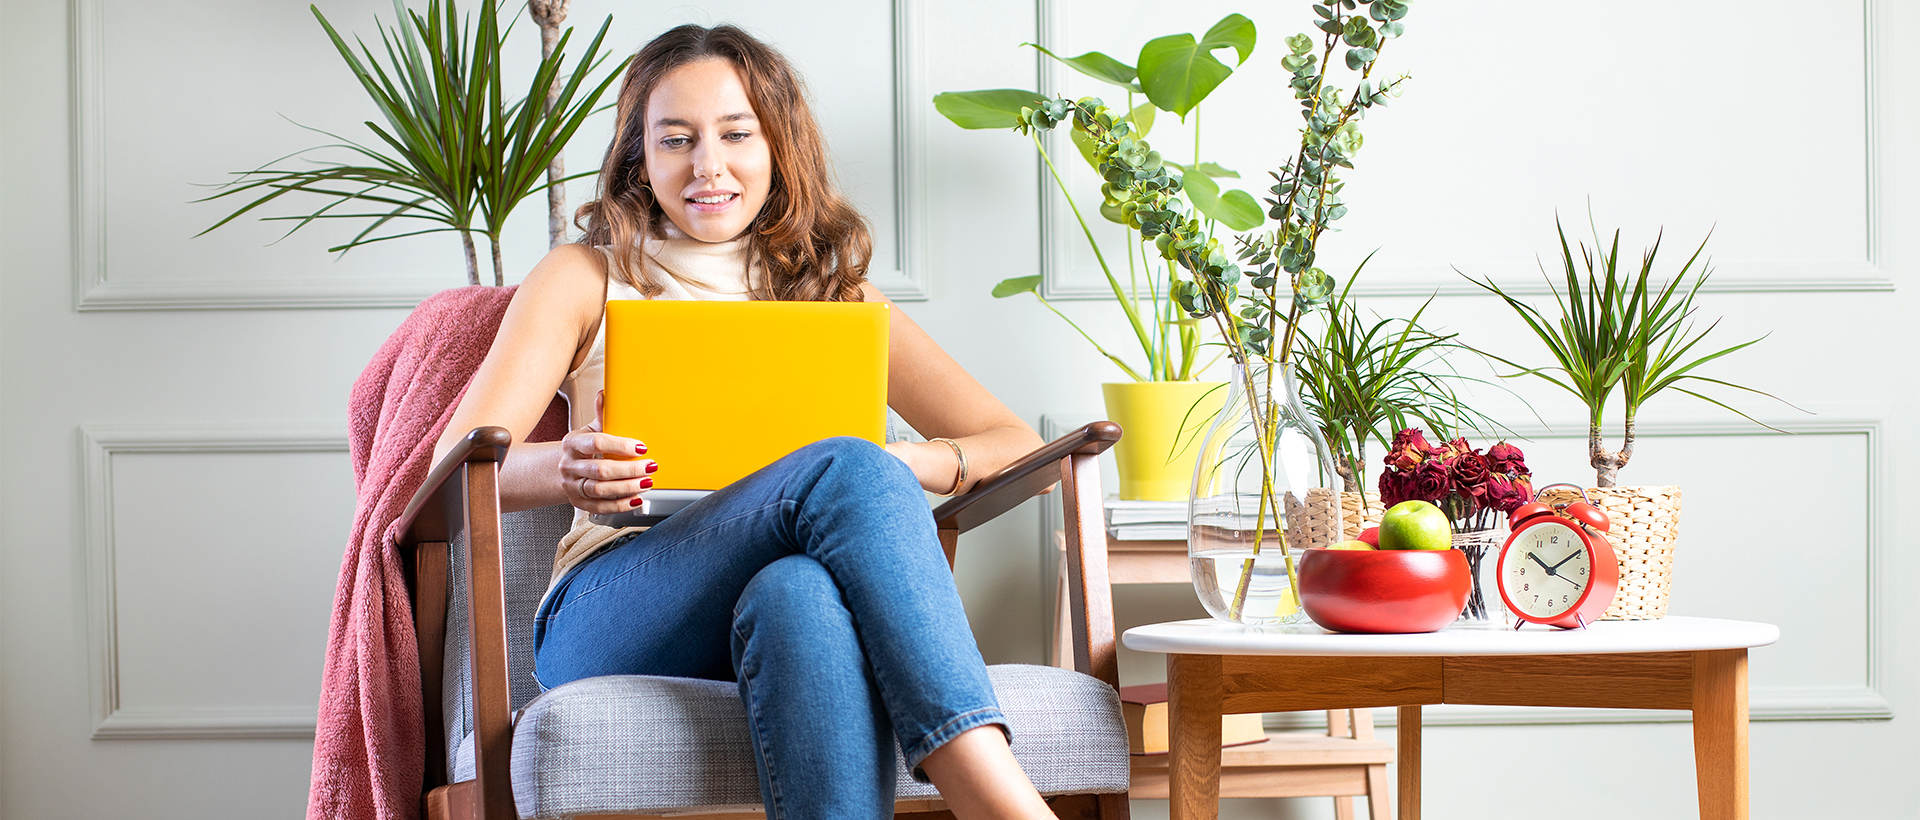 A woman surrounded by houseplants taking an online course on her laptop.